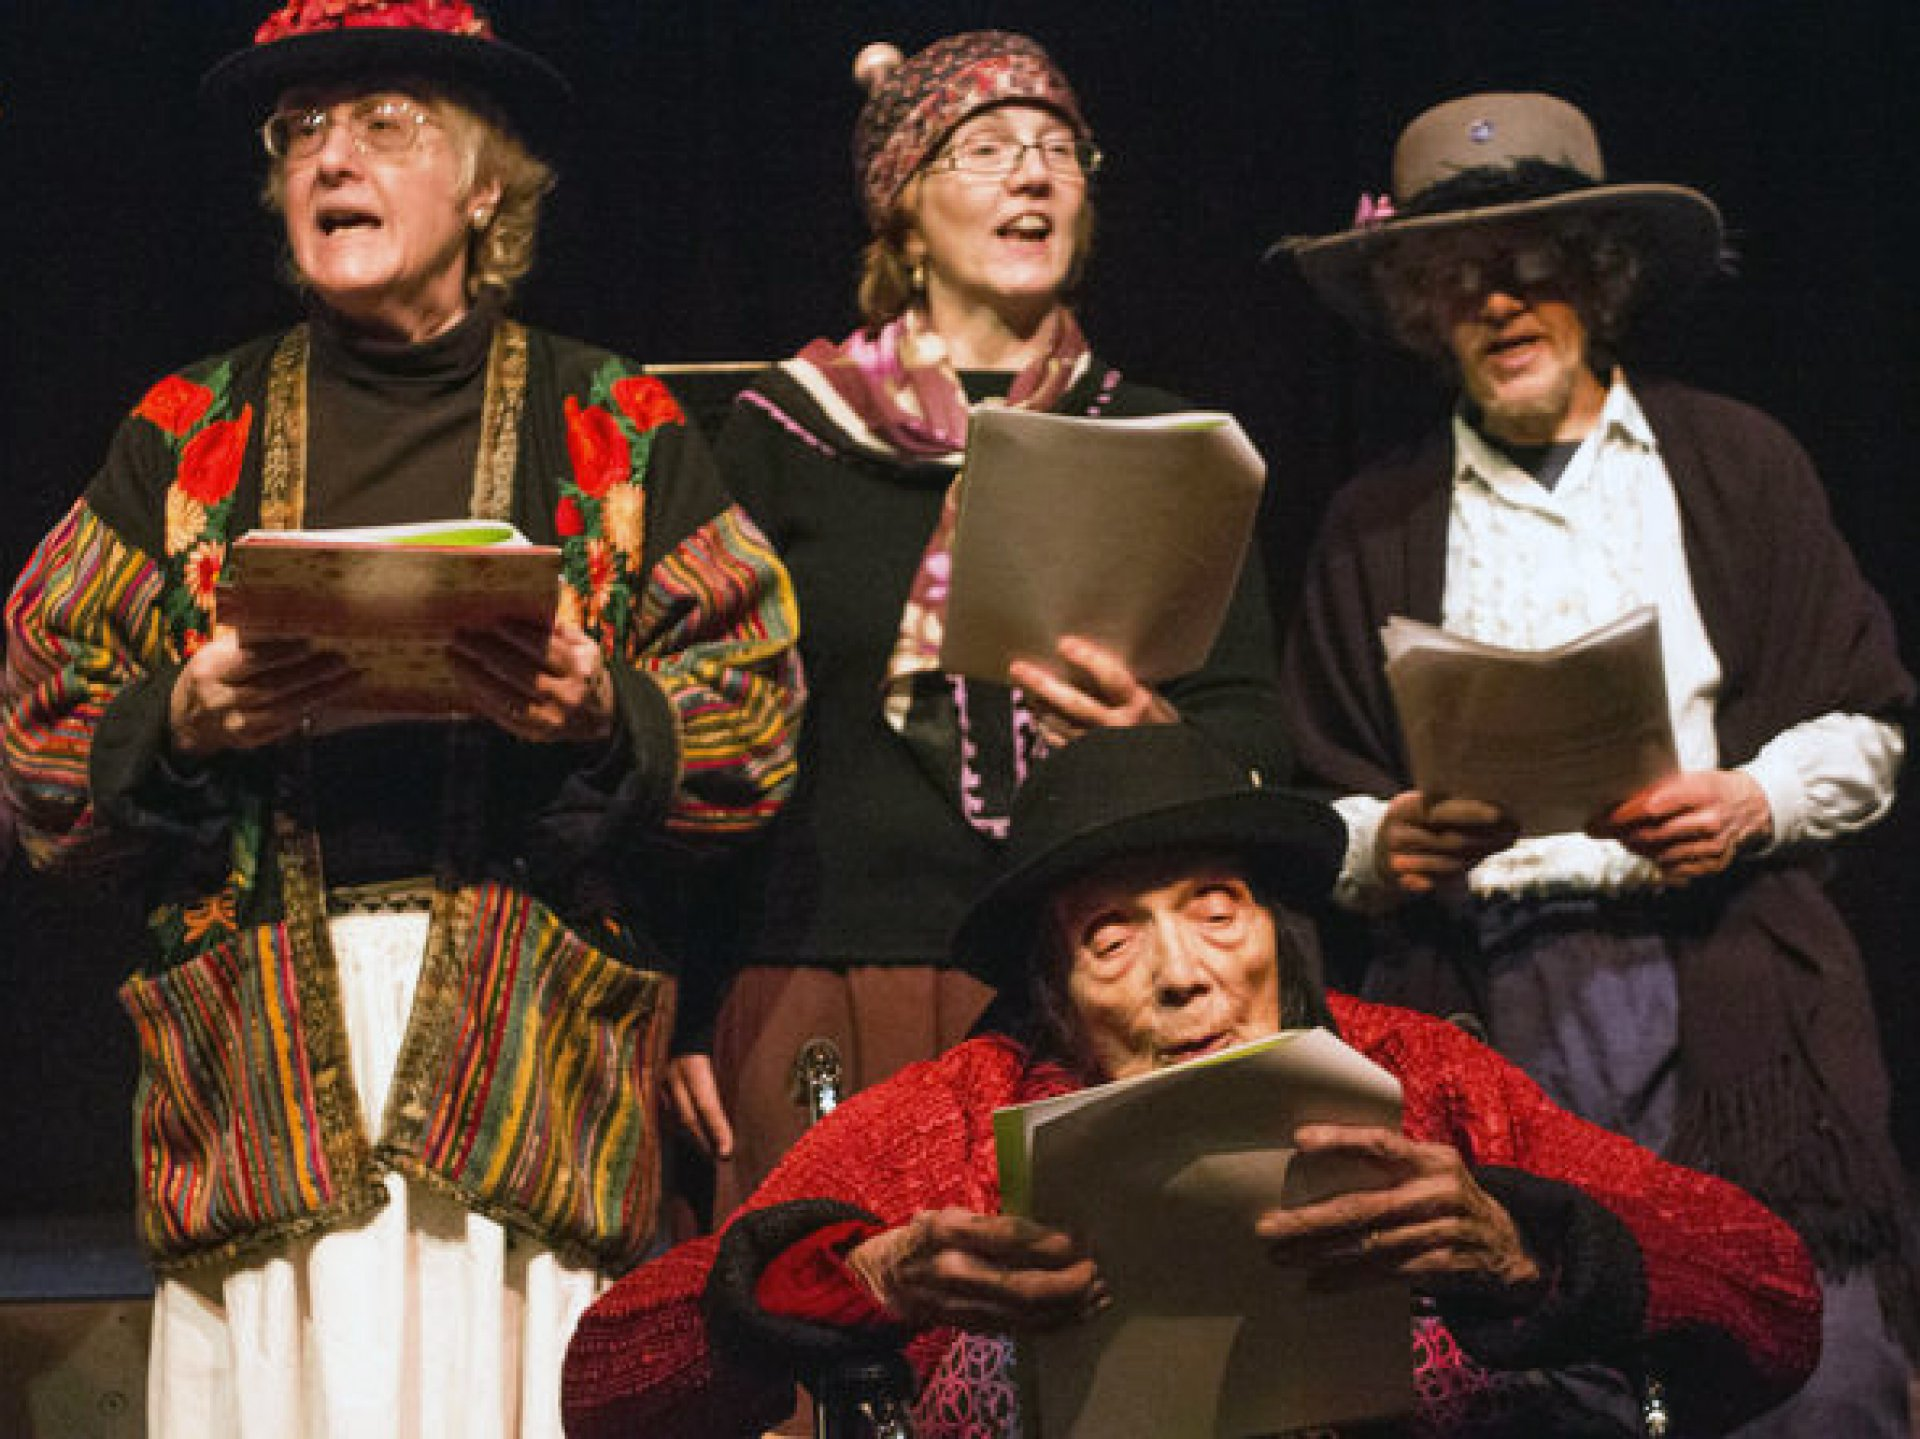 Raging Grannies, an activist organization, on stage singing at the Arcata Playhouse on March 8. Photo by Bailey Tennery.